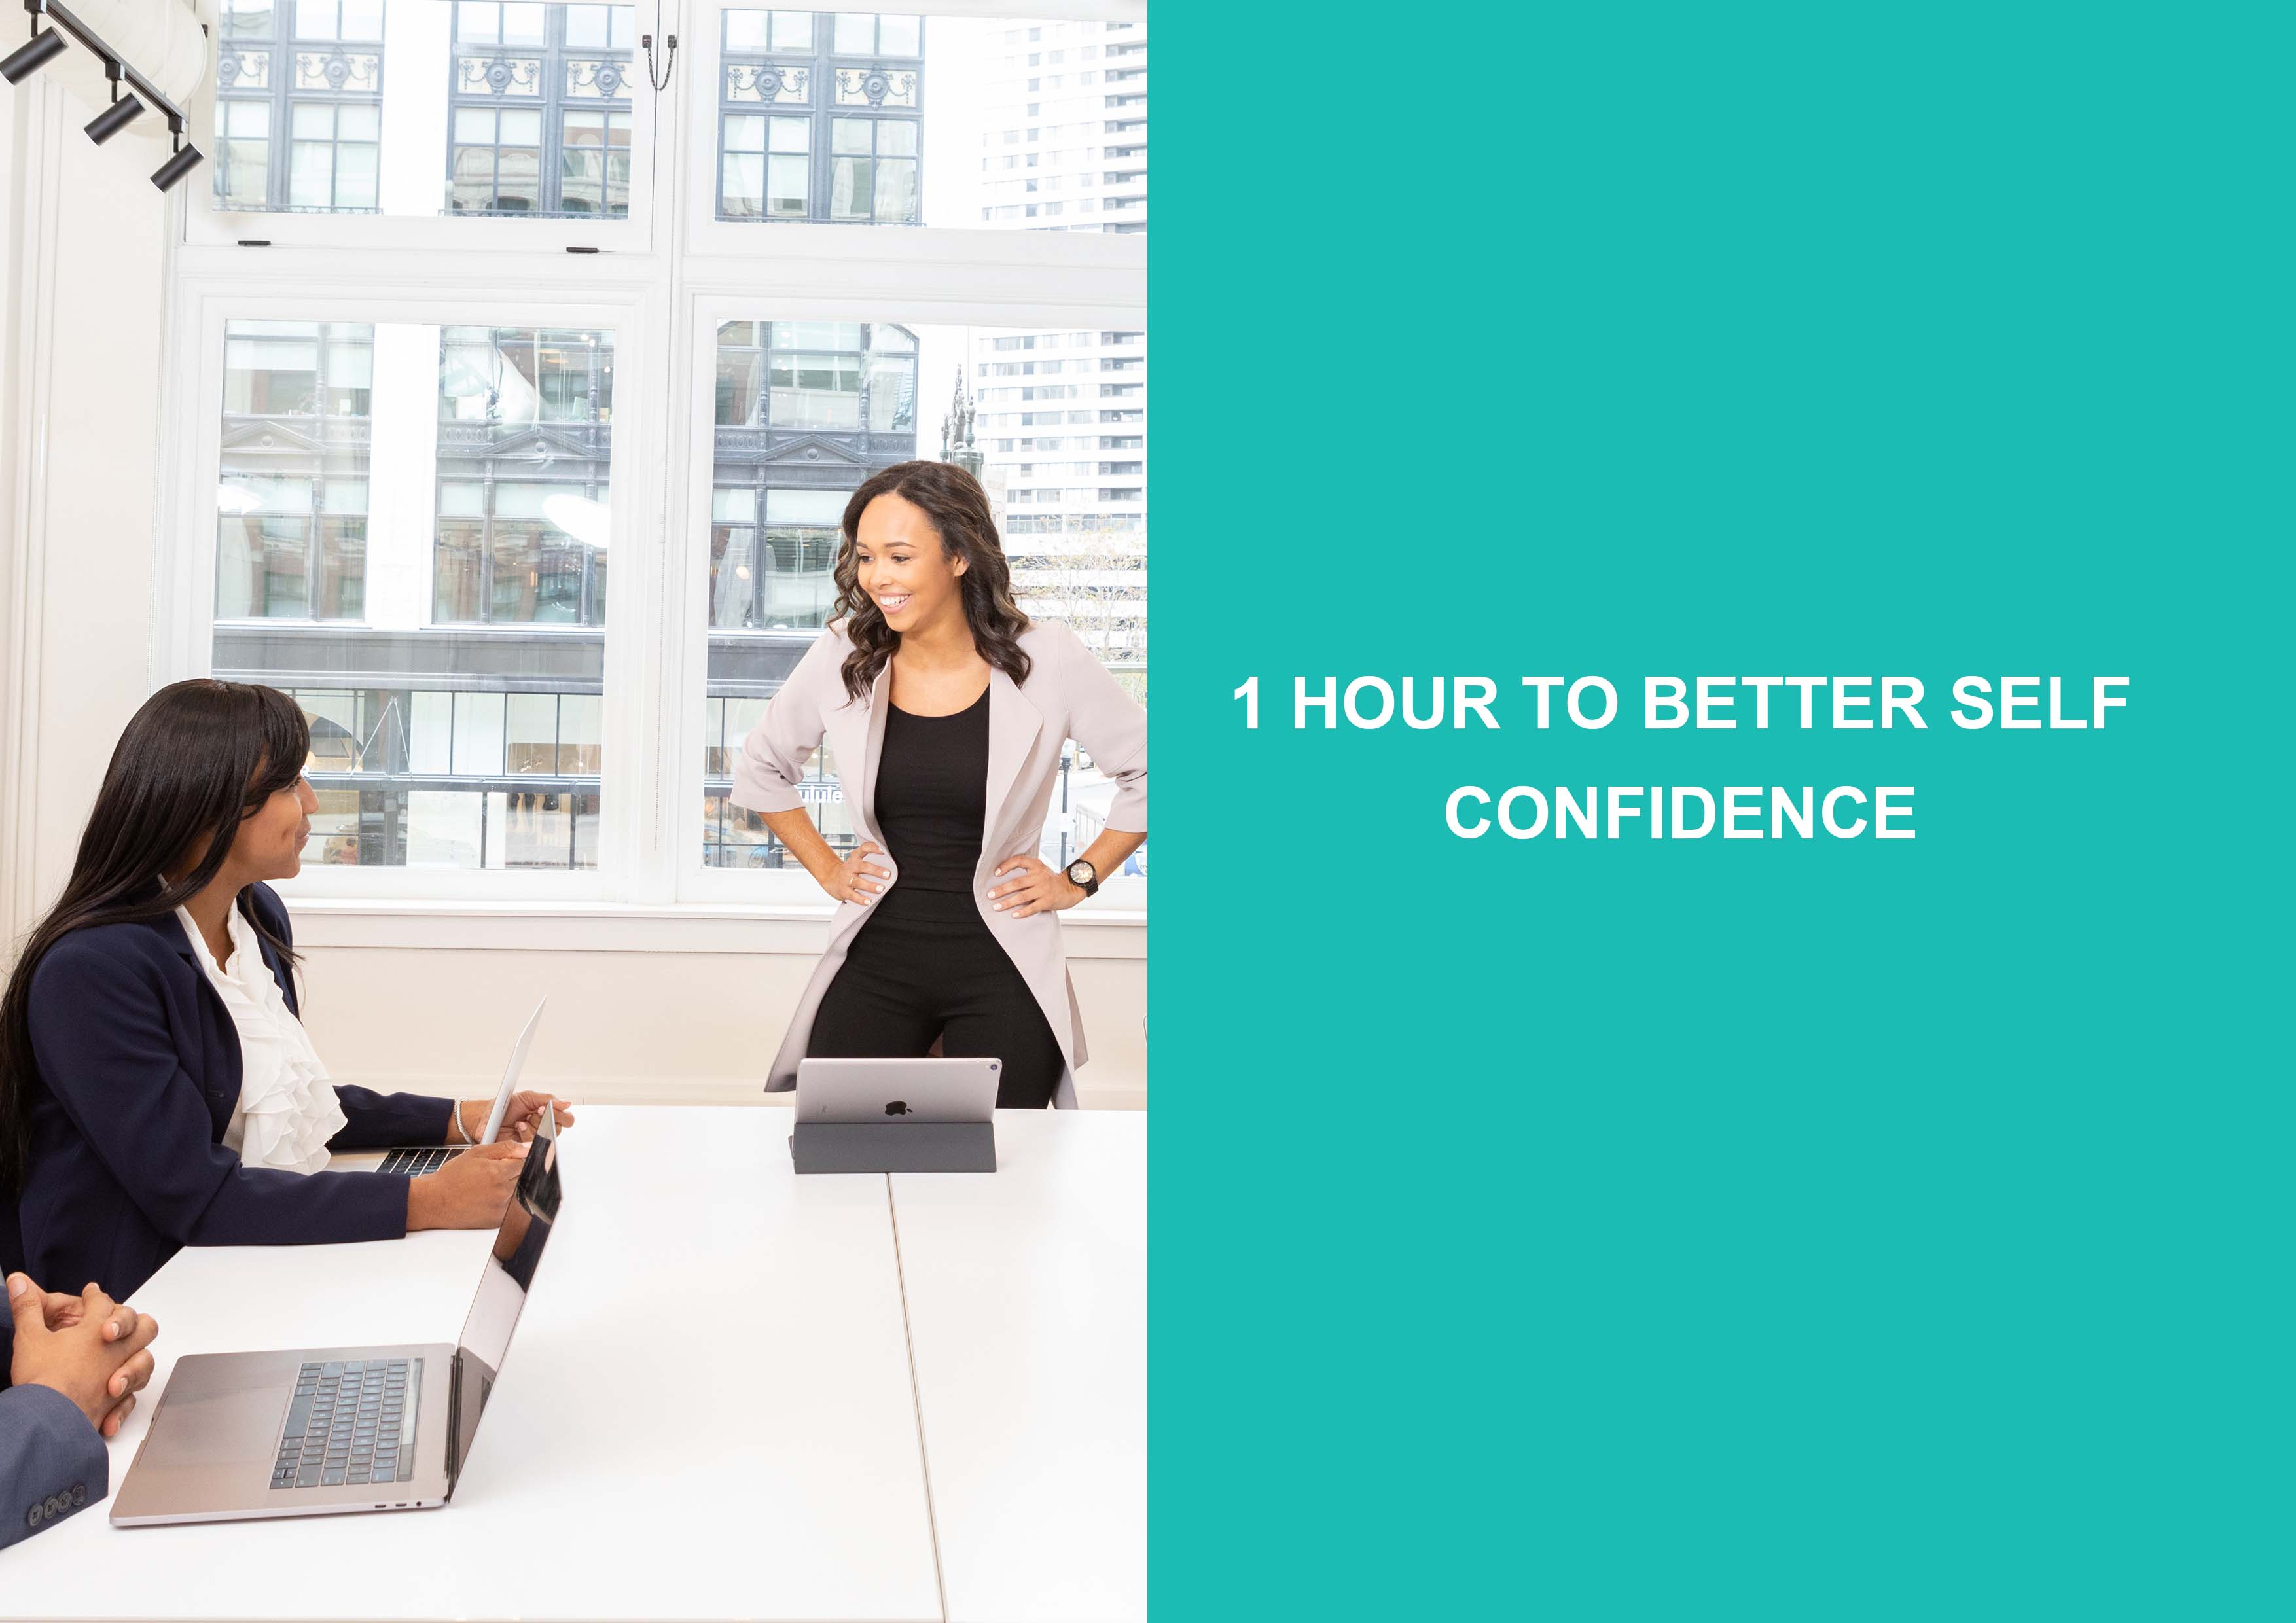 1 Hour To Better Self Confidence